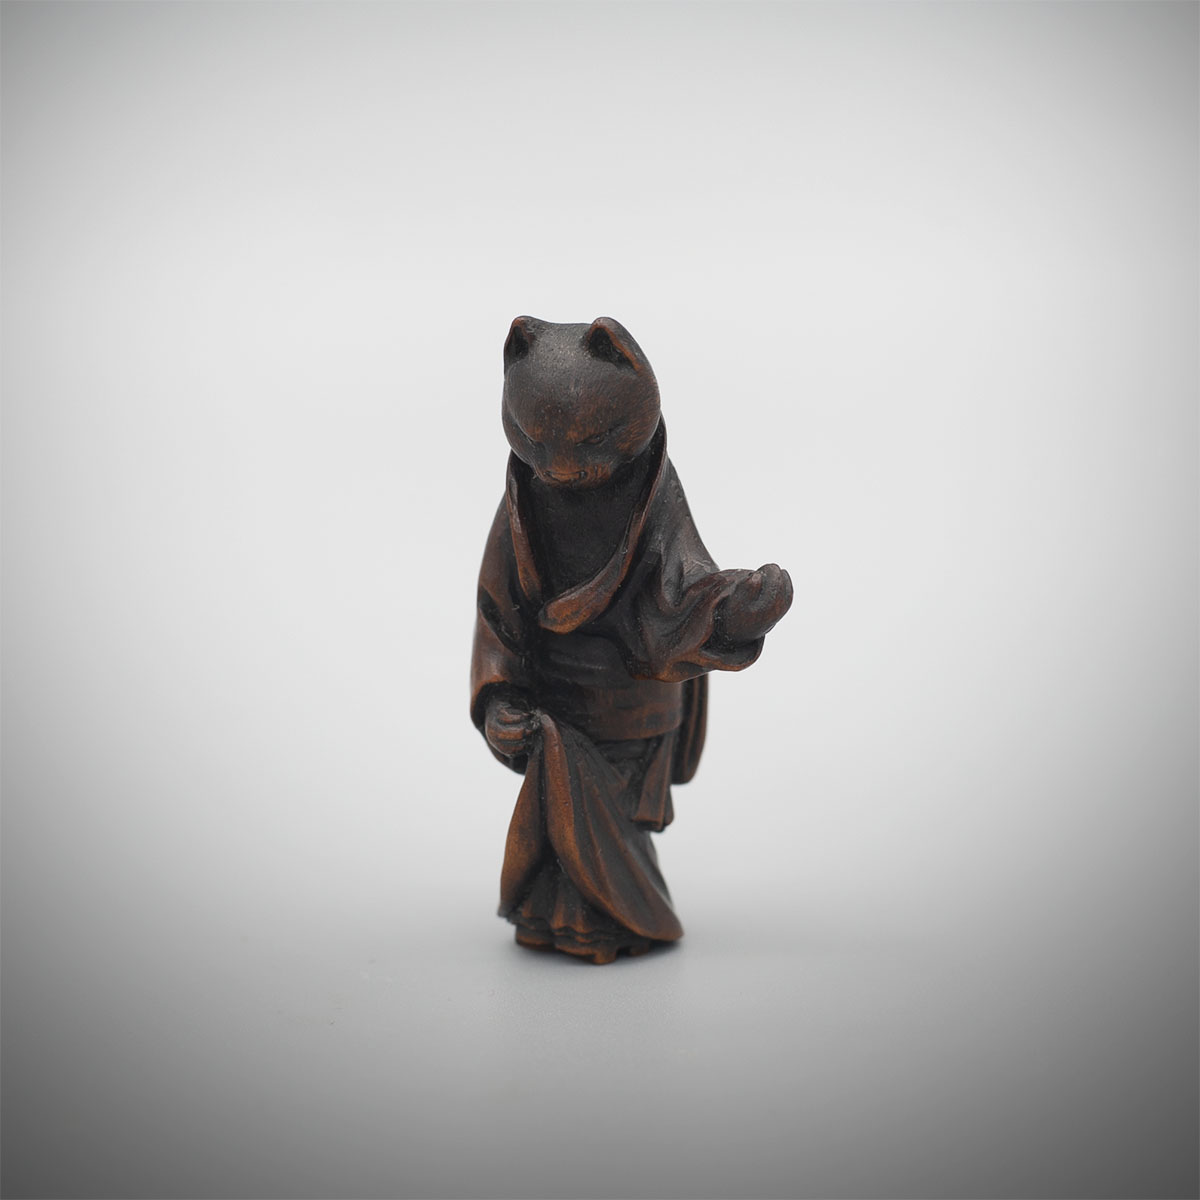 Dark Stained Wood Netsuke of a Cat Geisha, by Ittan, MR3345_v1